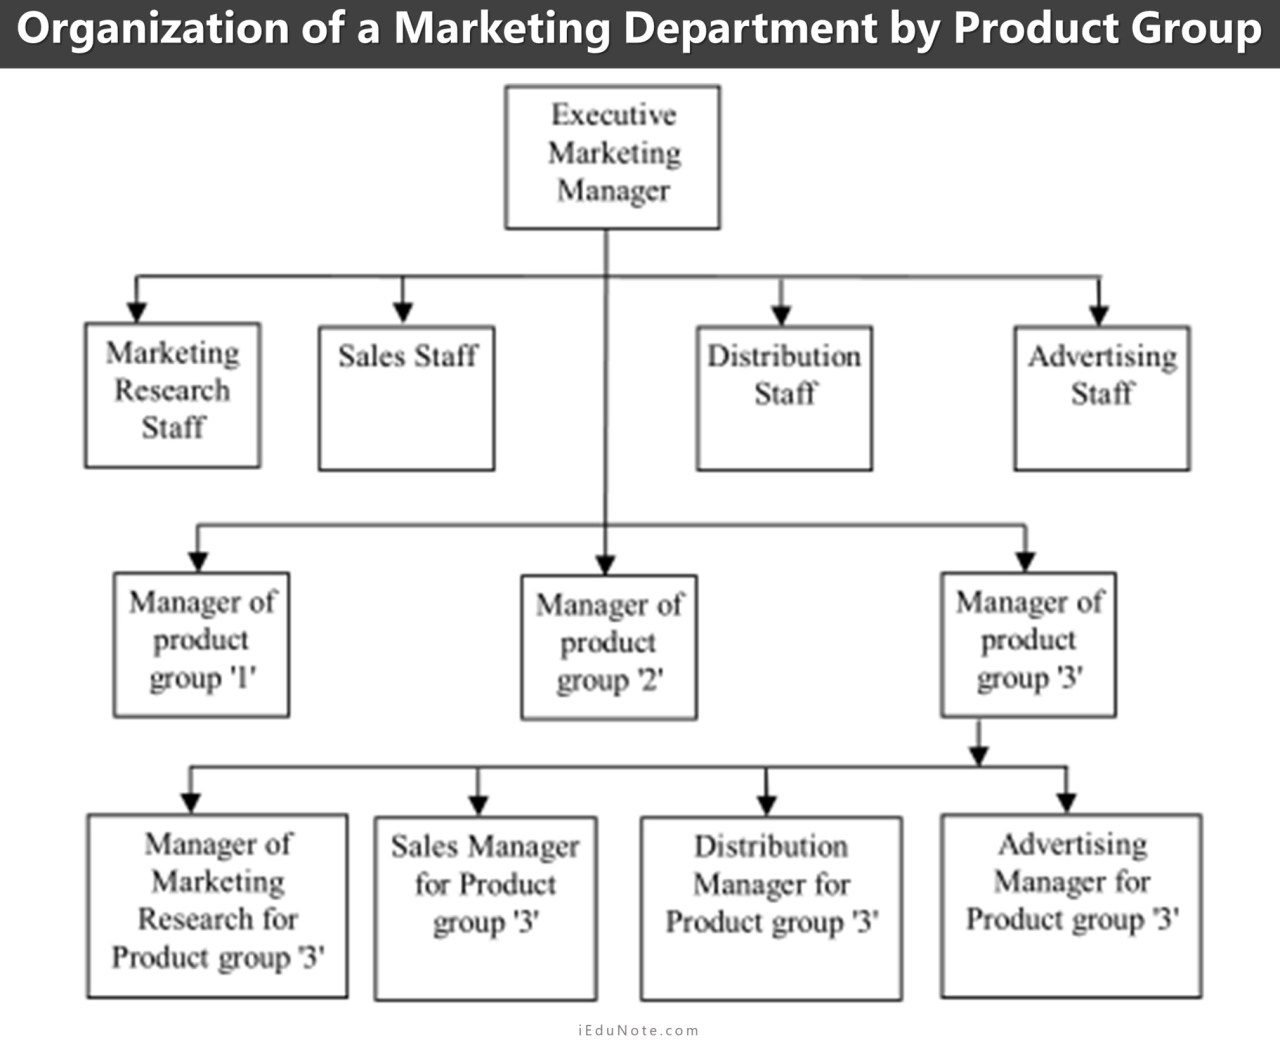 organization of marketing department by product group